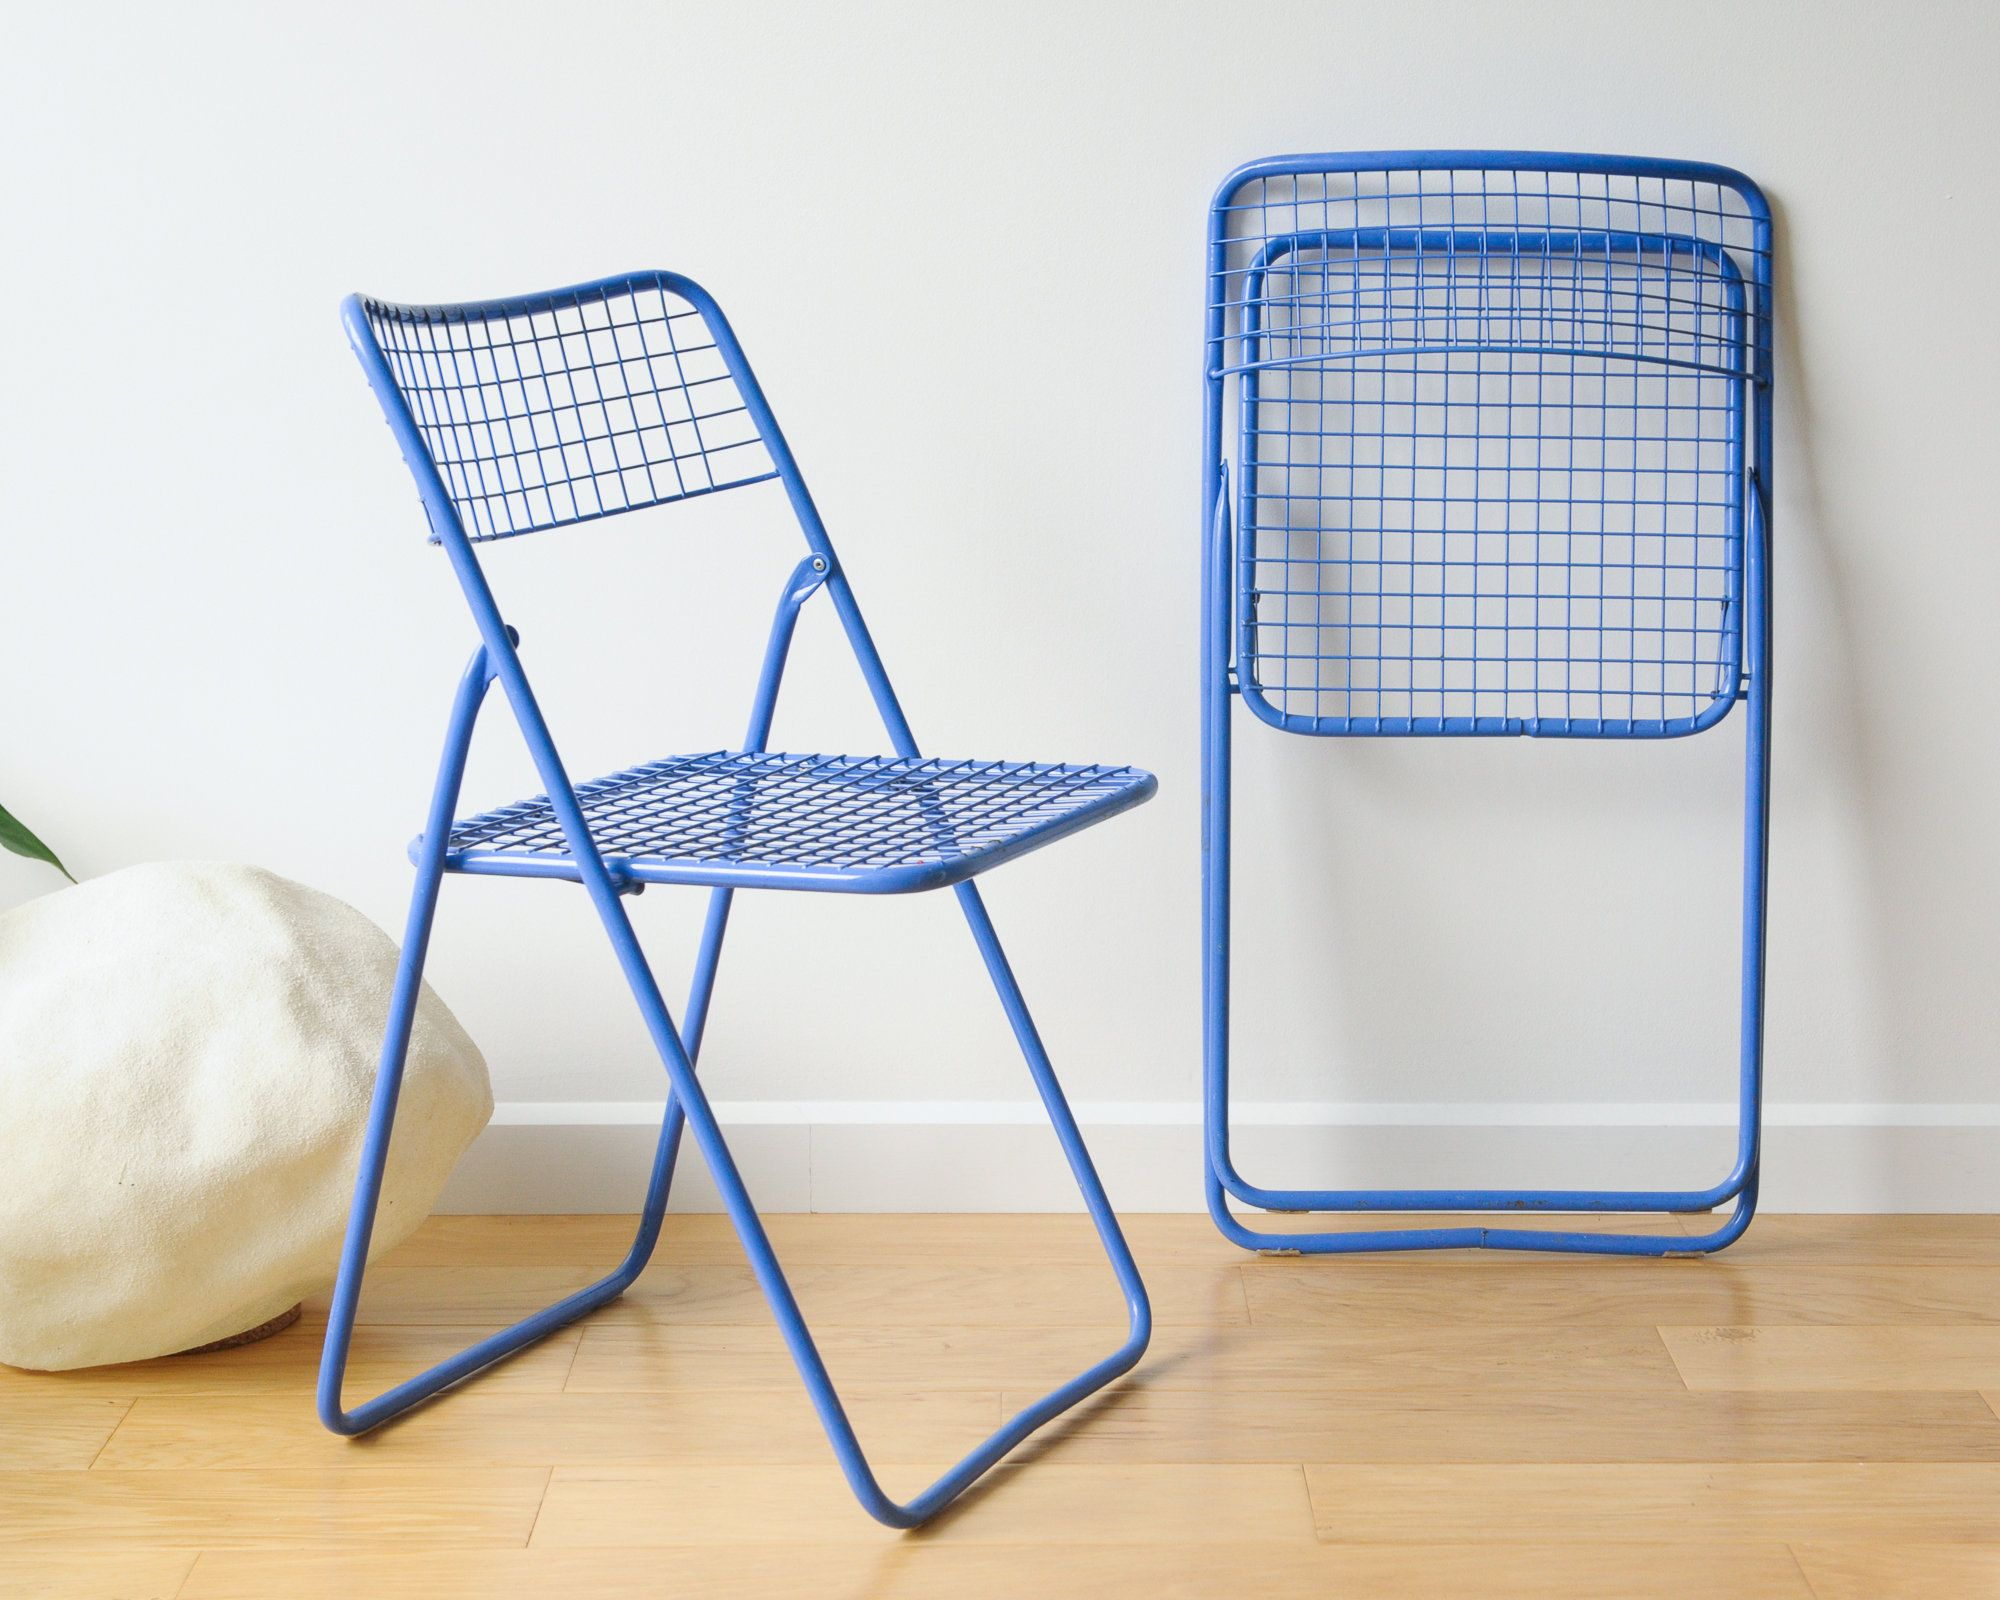 1980s Vintage Ikea Ted Net Chairs By Niels Gammelgaard Folding Chairs Blue And Chrome Metal Wire Swedish Design Unique Design Folding Chair Chair Swedish Design